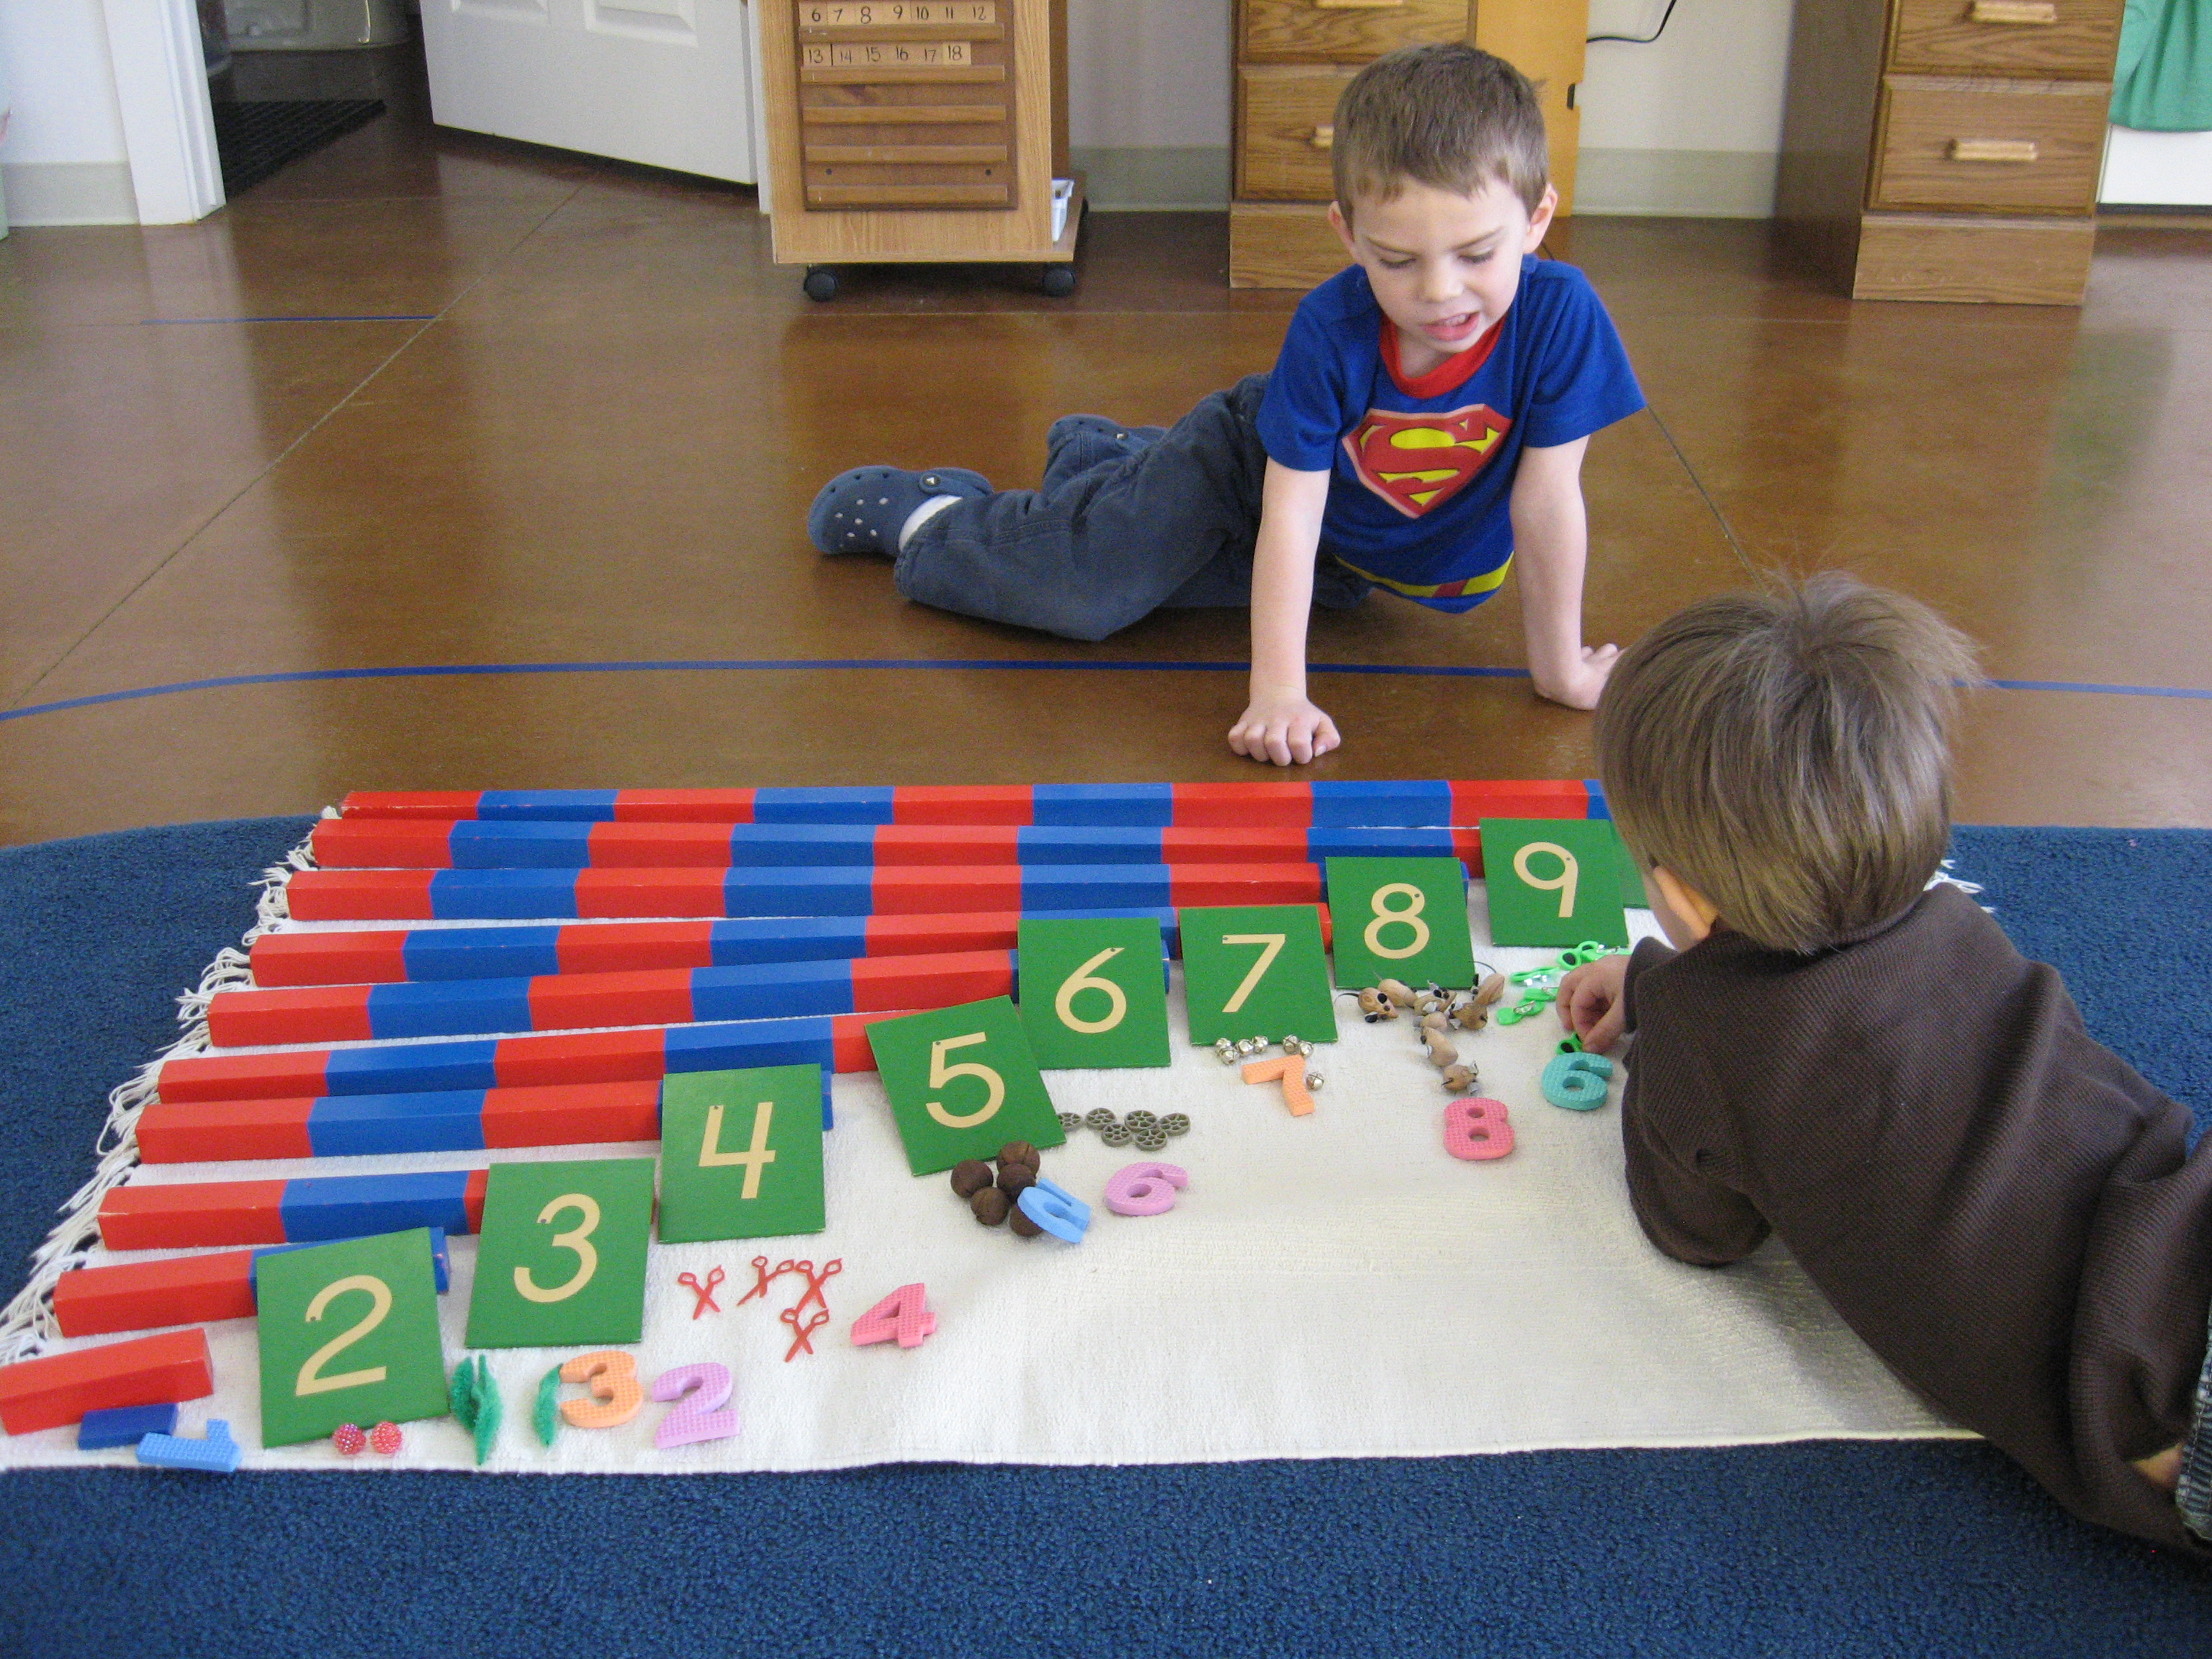 The Montessori Place Of Learning Helping Children Grow And Learn